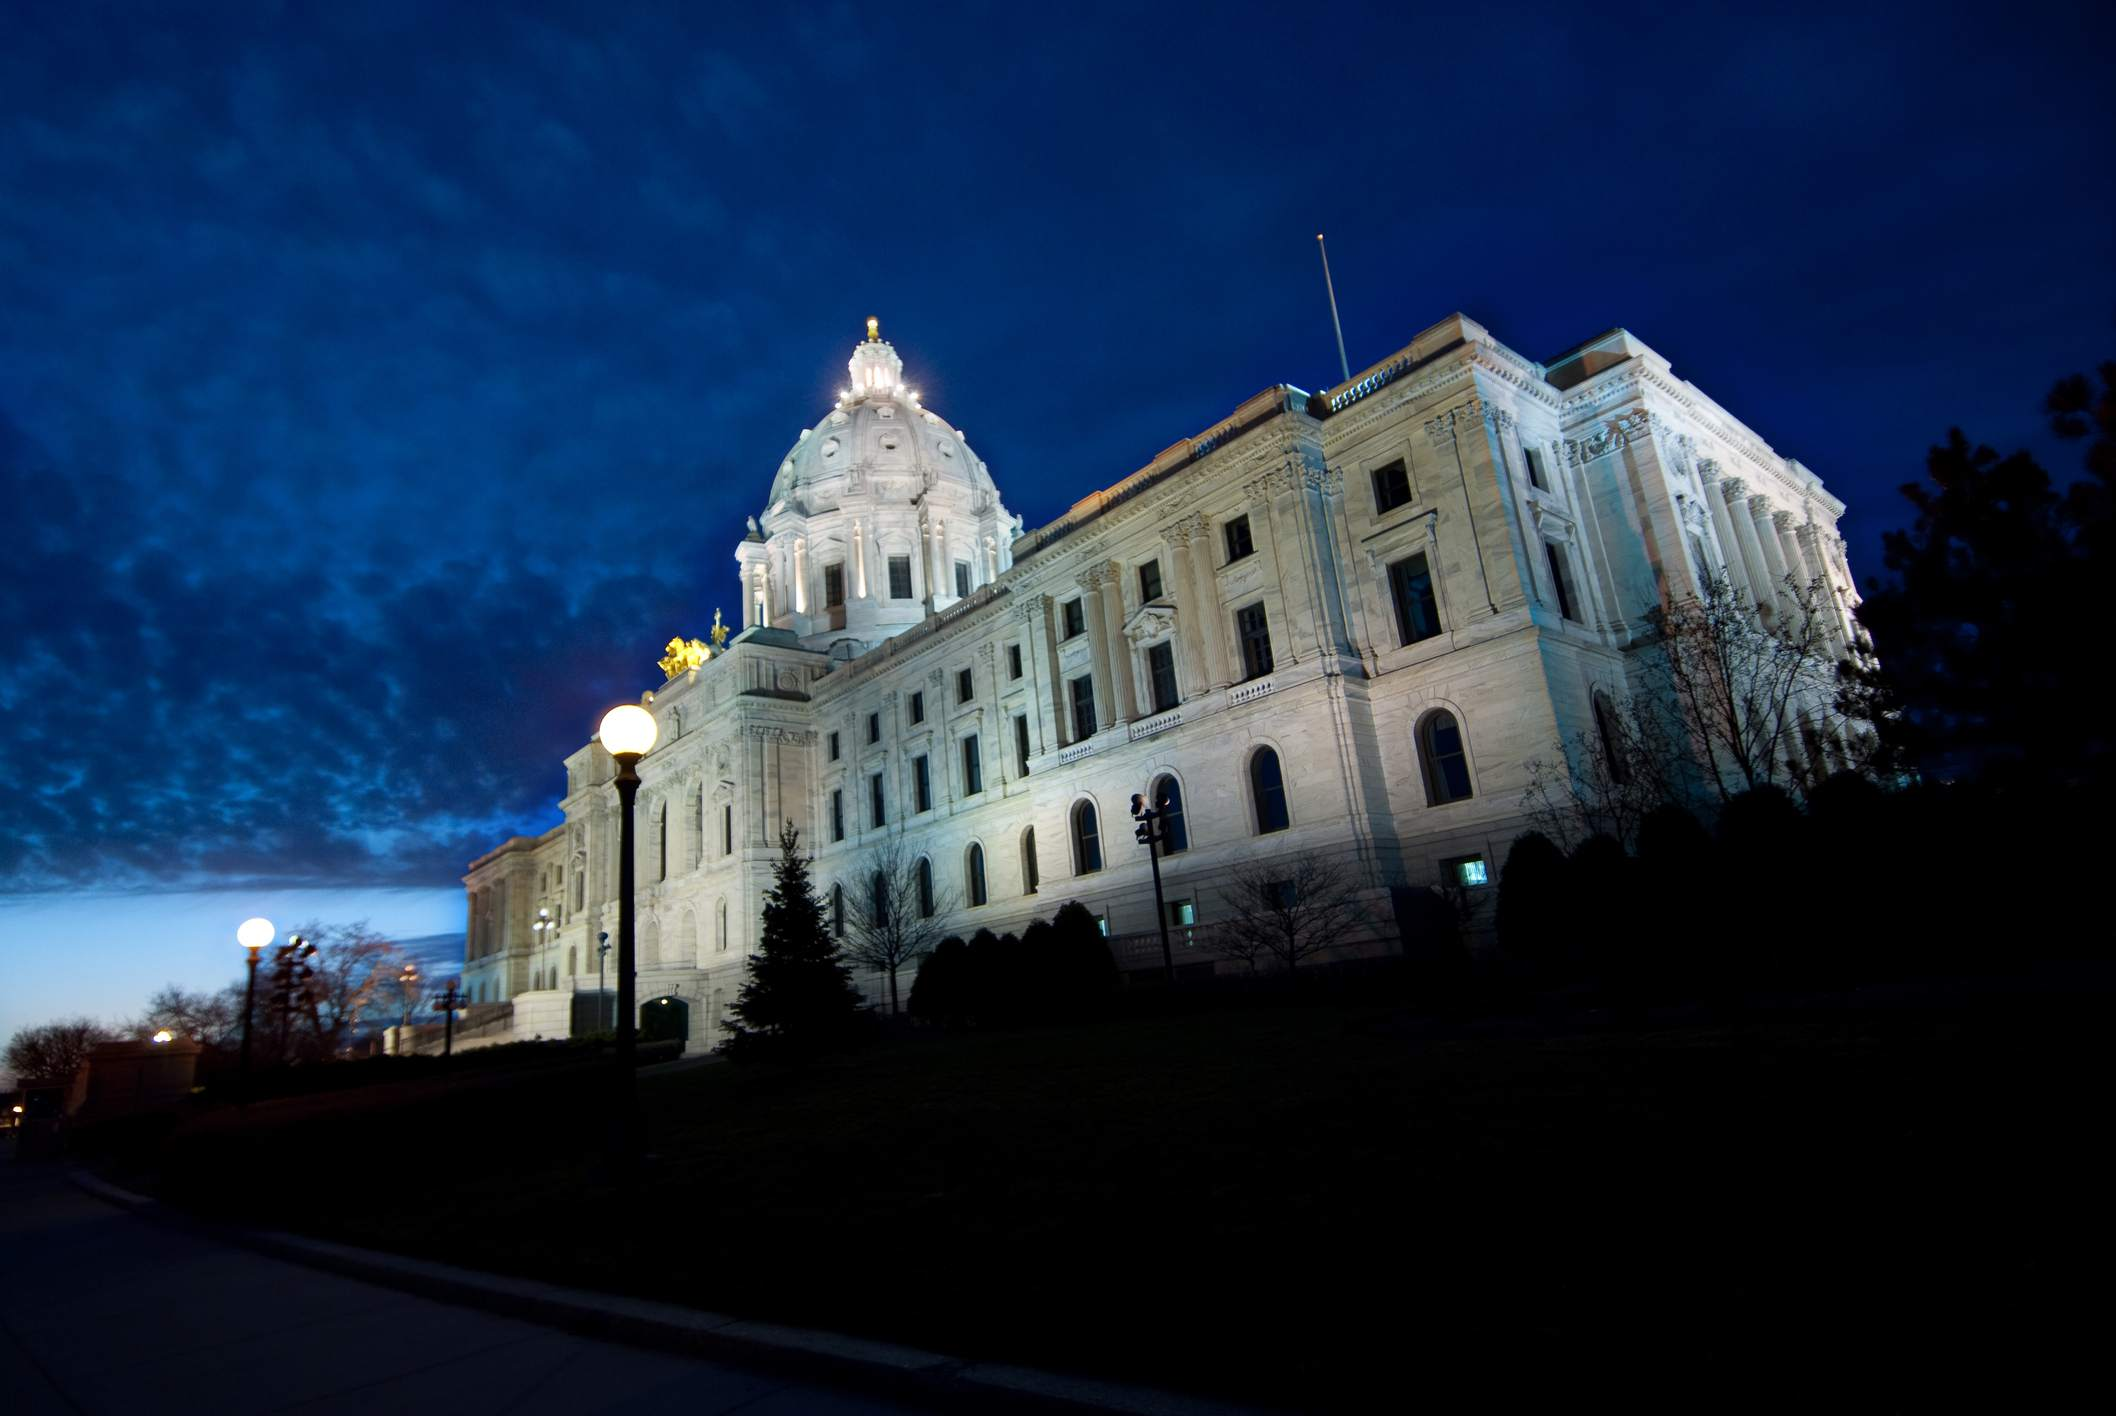 St. Paul Minneapolis state capitol building at dusk